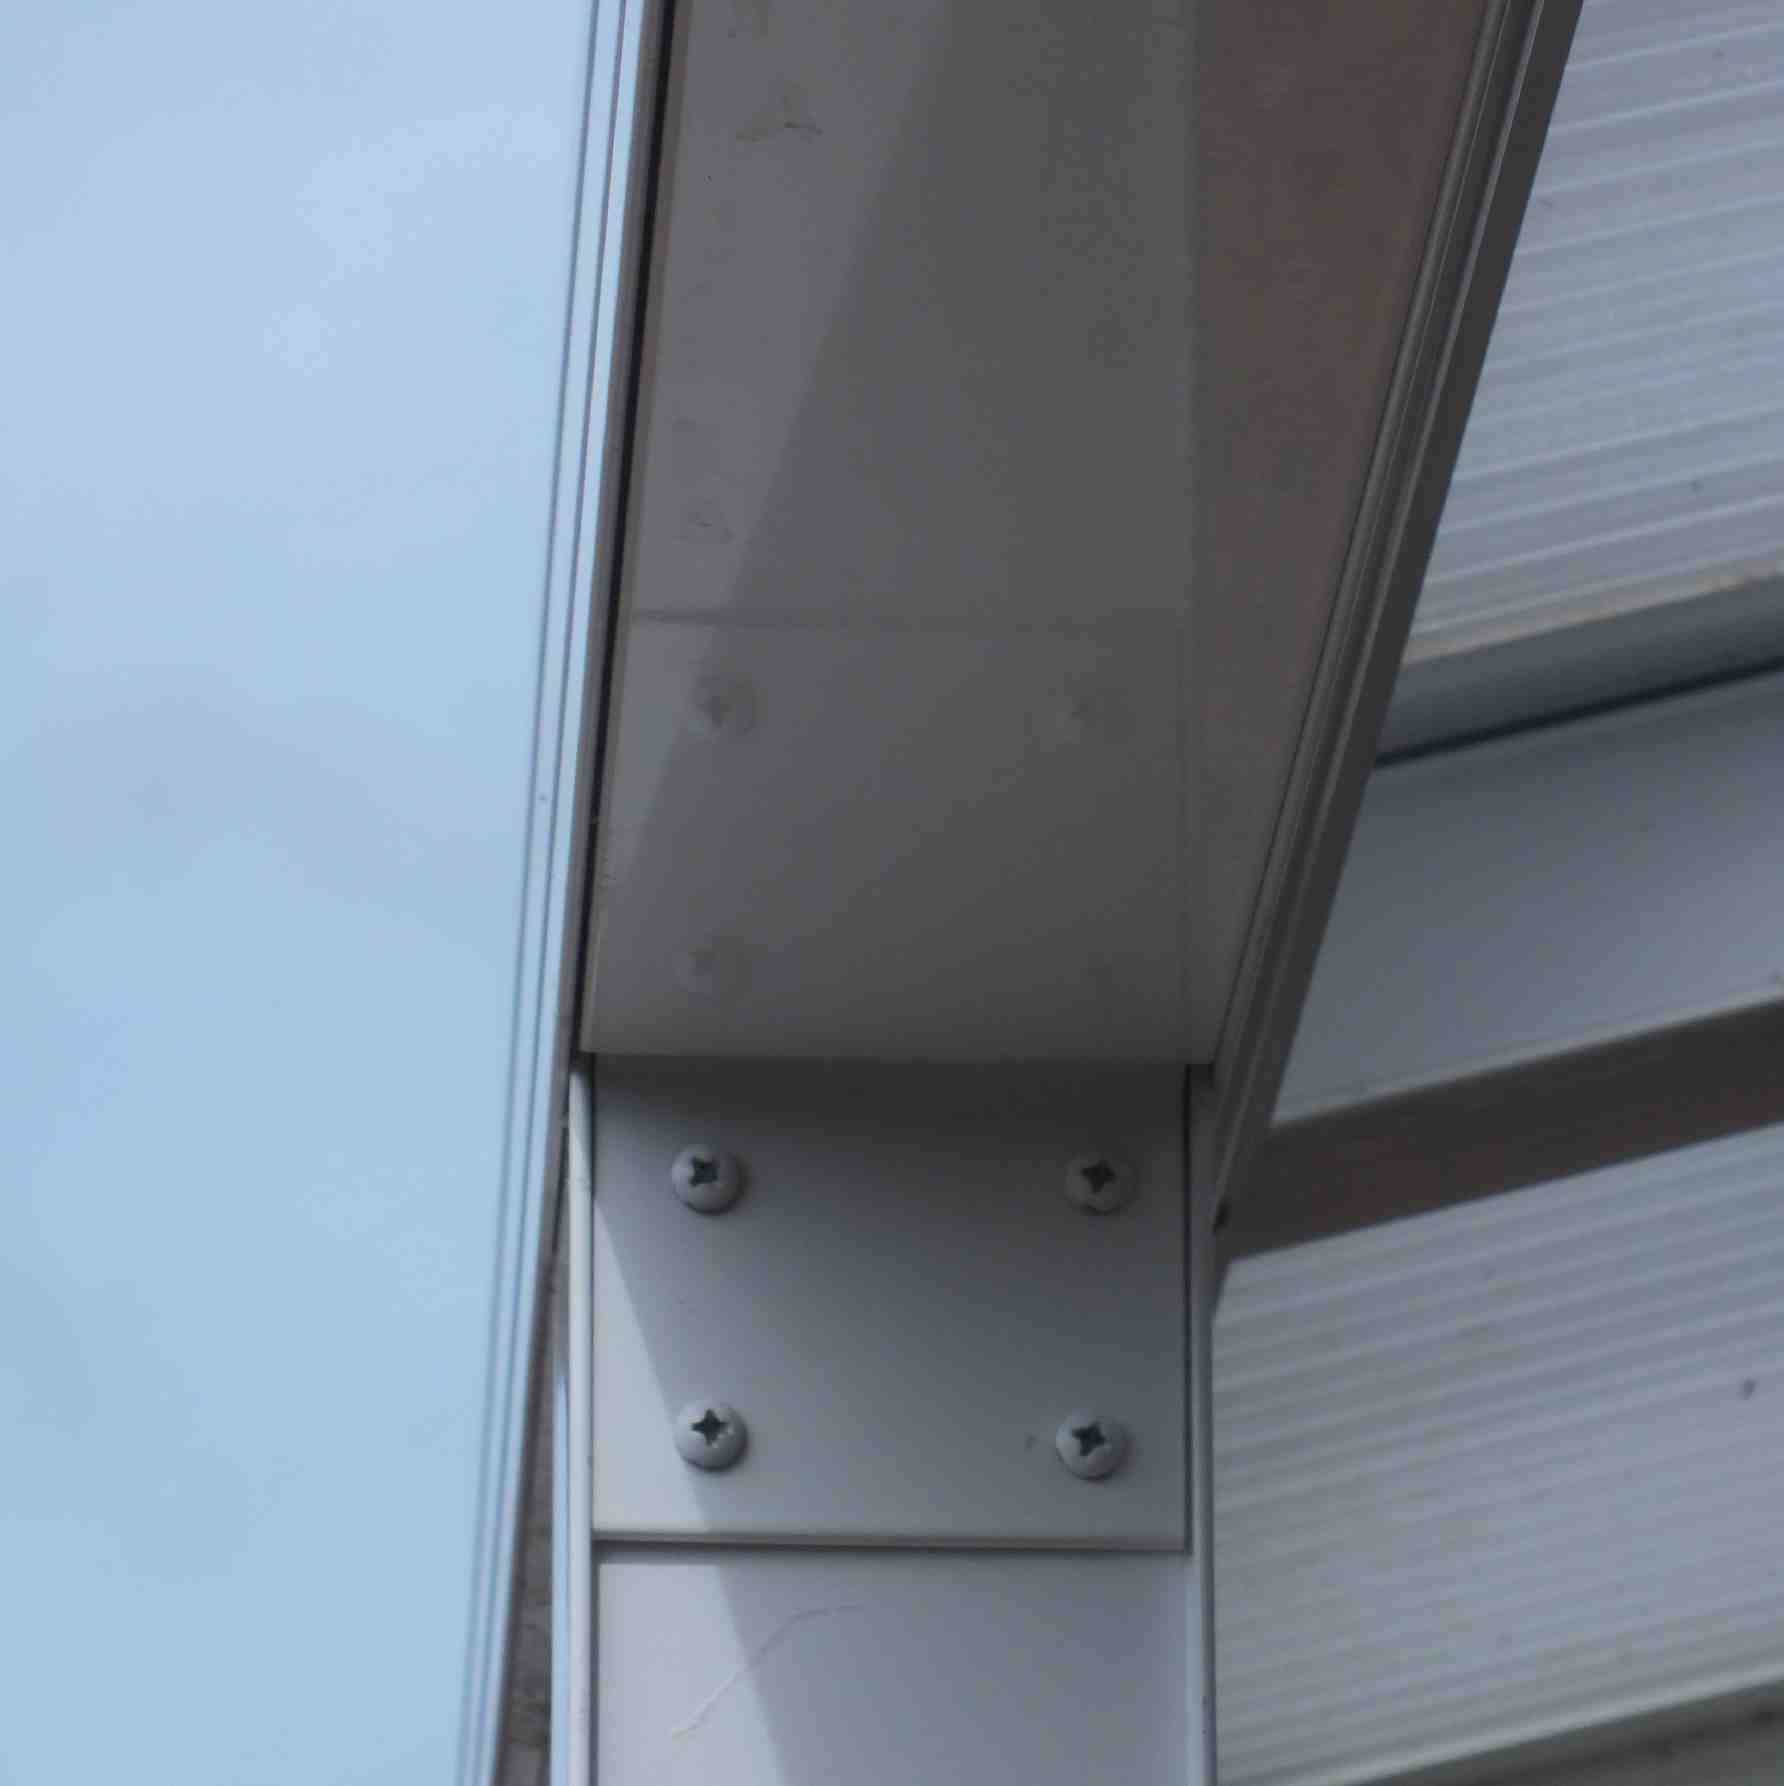 Affordable Omega Verandah with 6mm Glass Clear Plate Polycarbonate Glazing - 4.2m (W) x 3.0m (P), (3) Supporting Posts